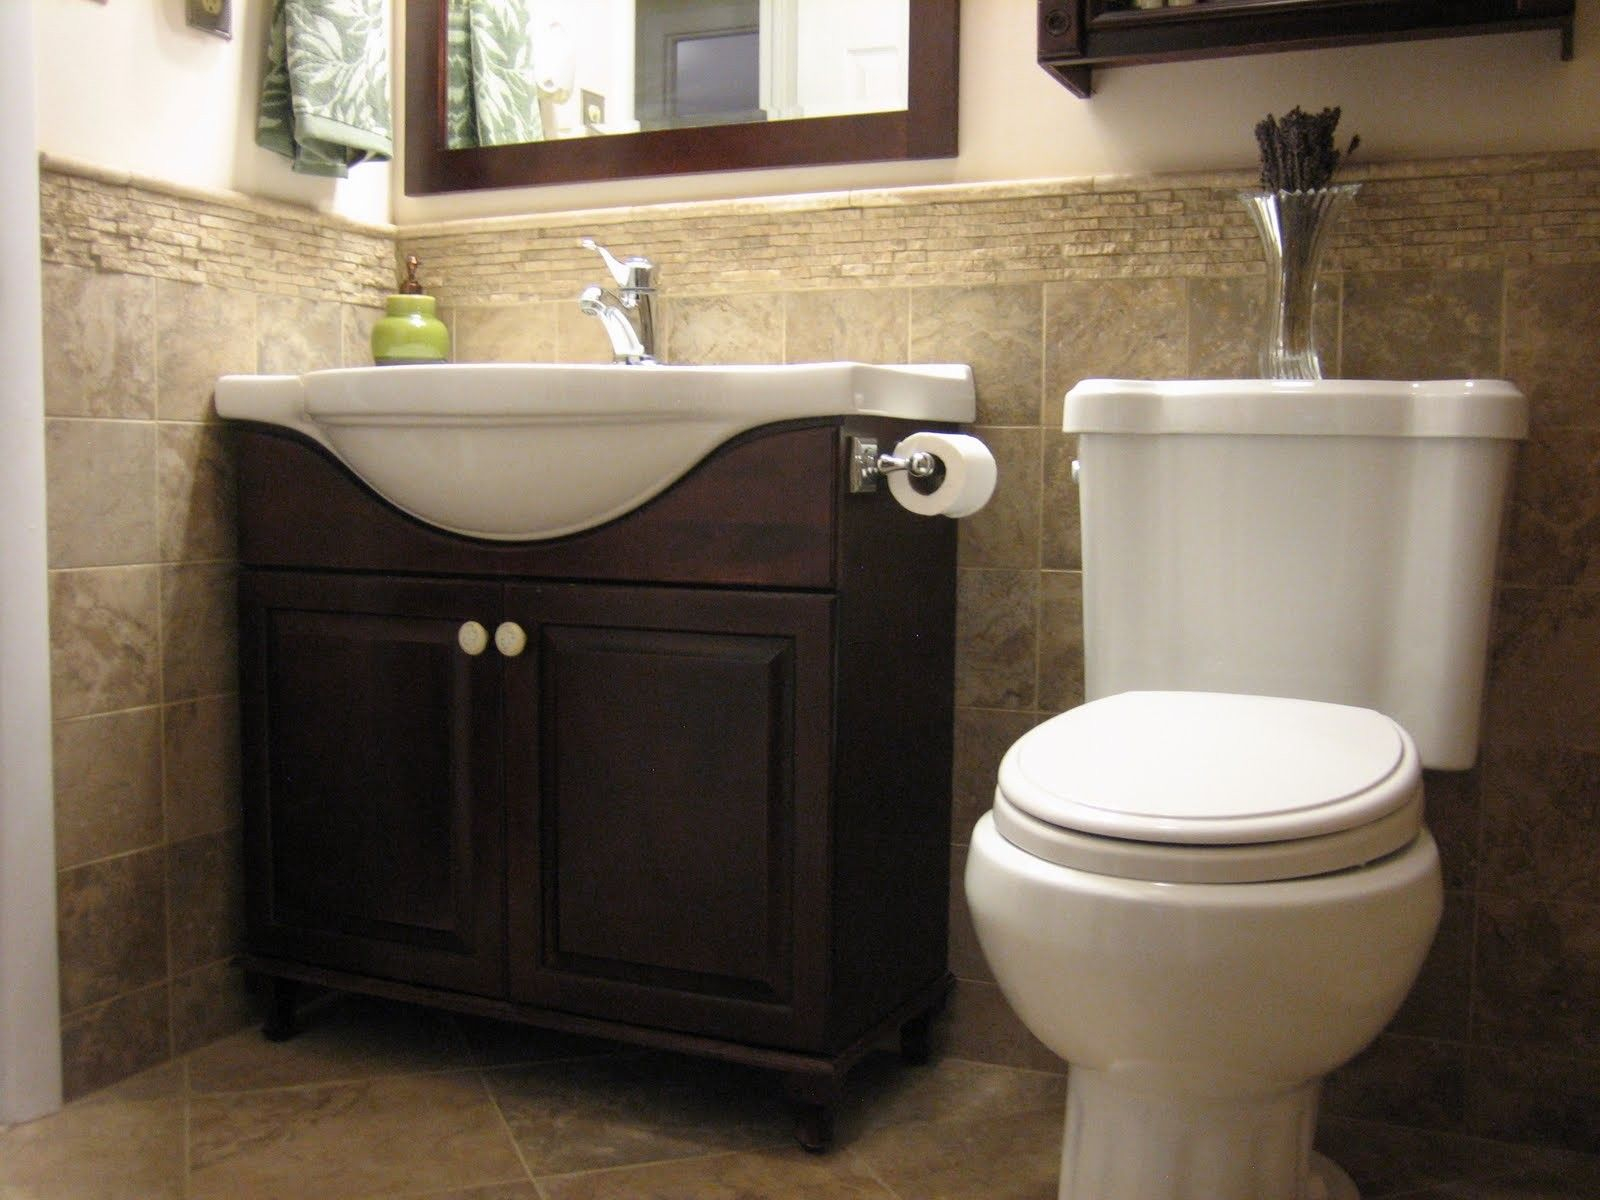 Tile Ideas For Half Bathroom For The Home In 2019 Small throughout sizing 1600 X 1200